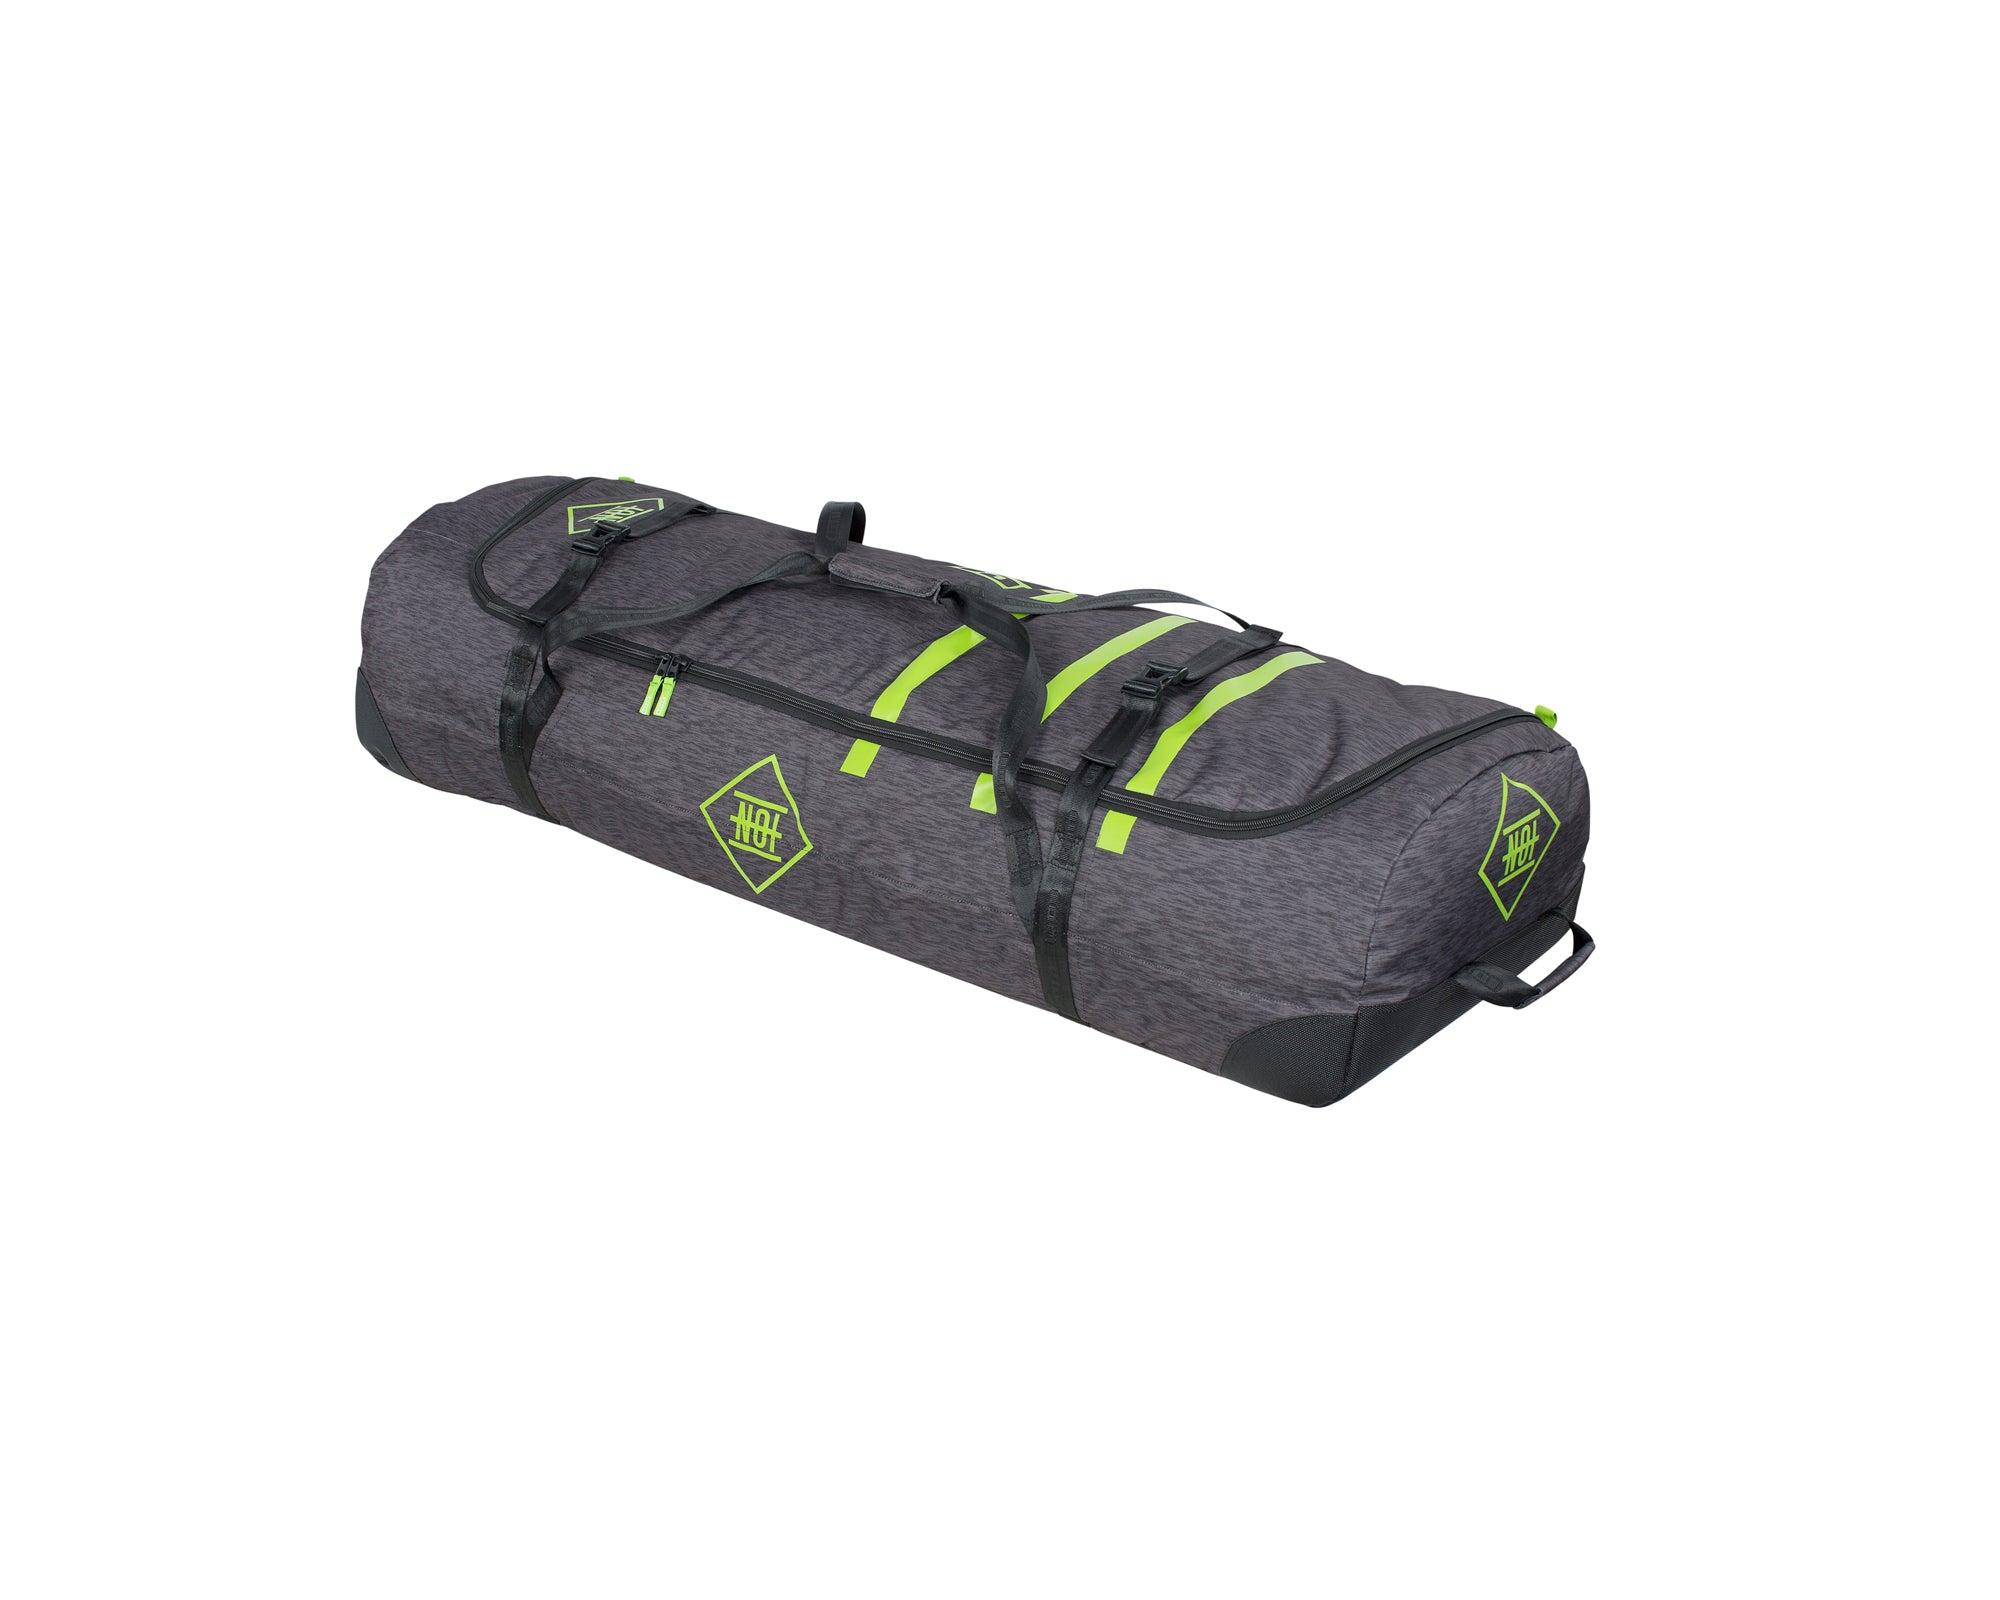 ION Kite Travel Bag Core Basic Canada